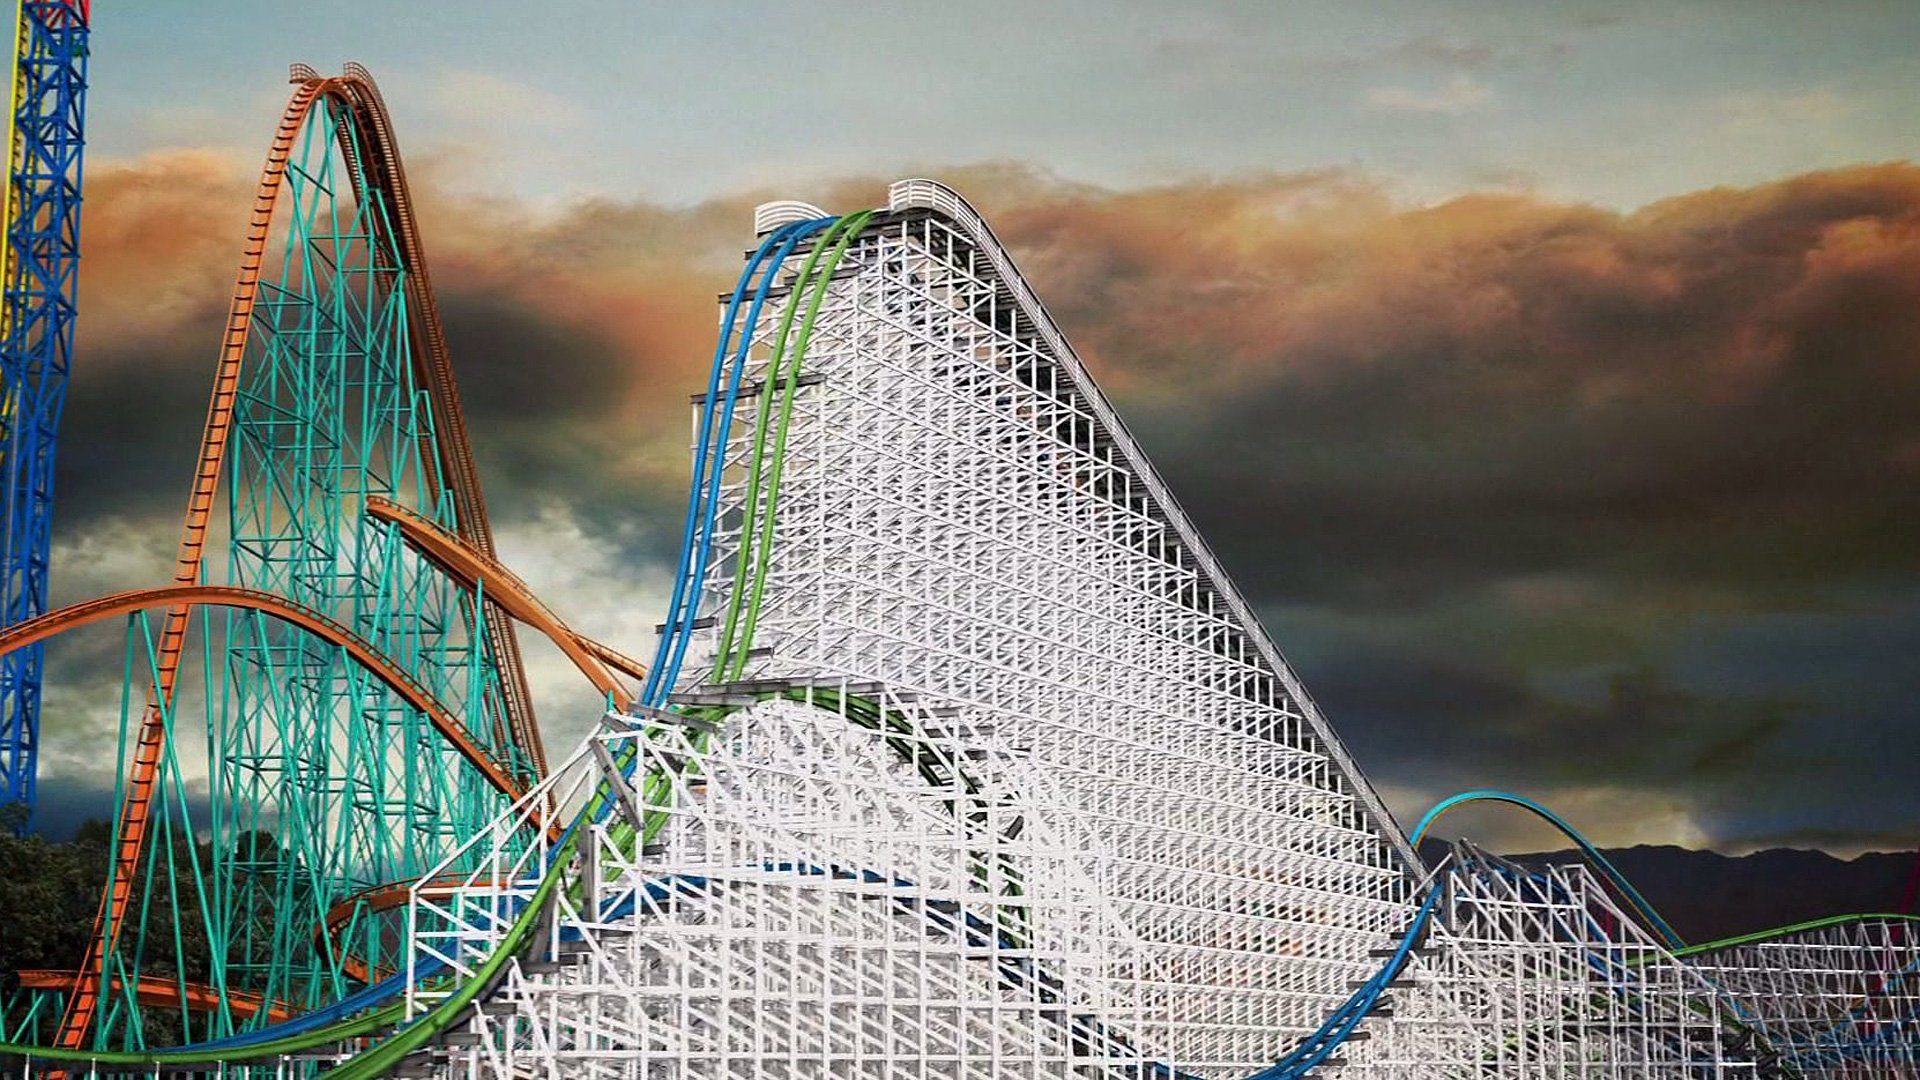 Magic Mountain Announces Twisted Plans for Iconic Colossus 1920x1080